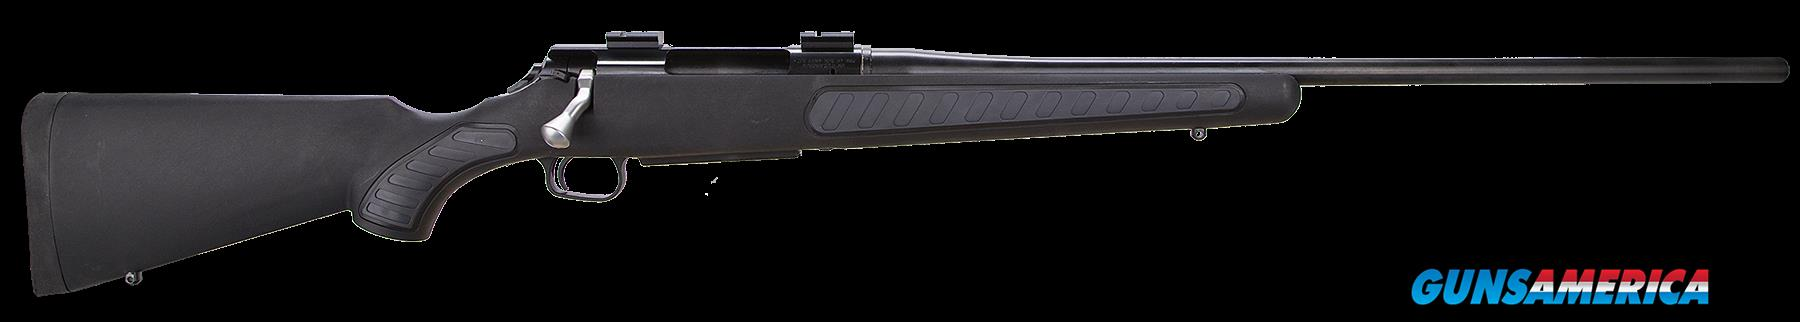 "T/C Arms 10175567 Venture Standard Bolt 300 Win Mag 24"" 3+1 Synthetic w/Rubber Panels Black Stk  Guns > Rifles > TU Misc Rifles"